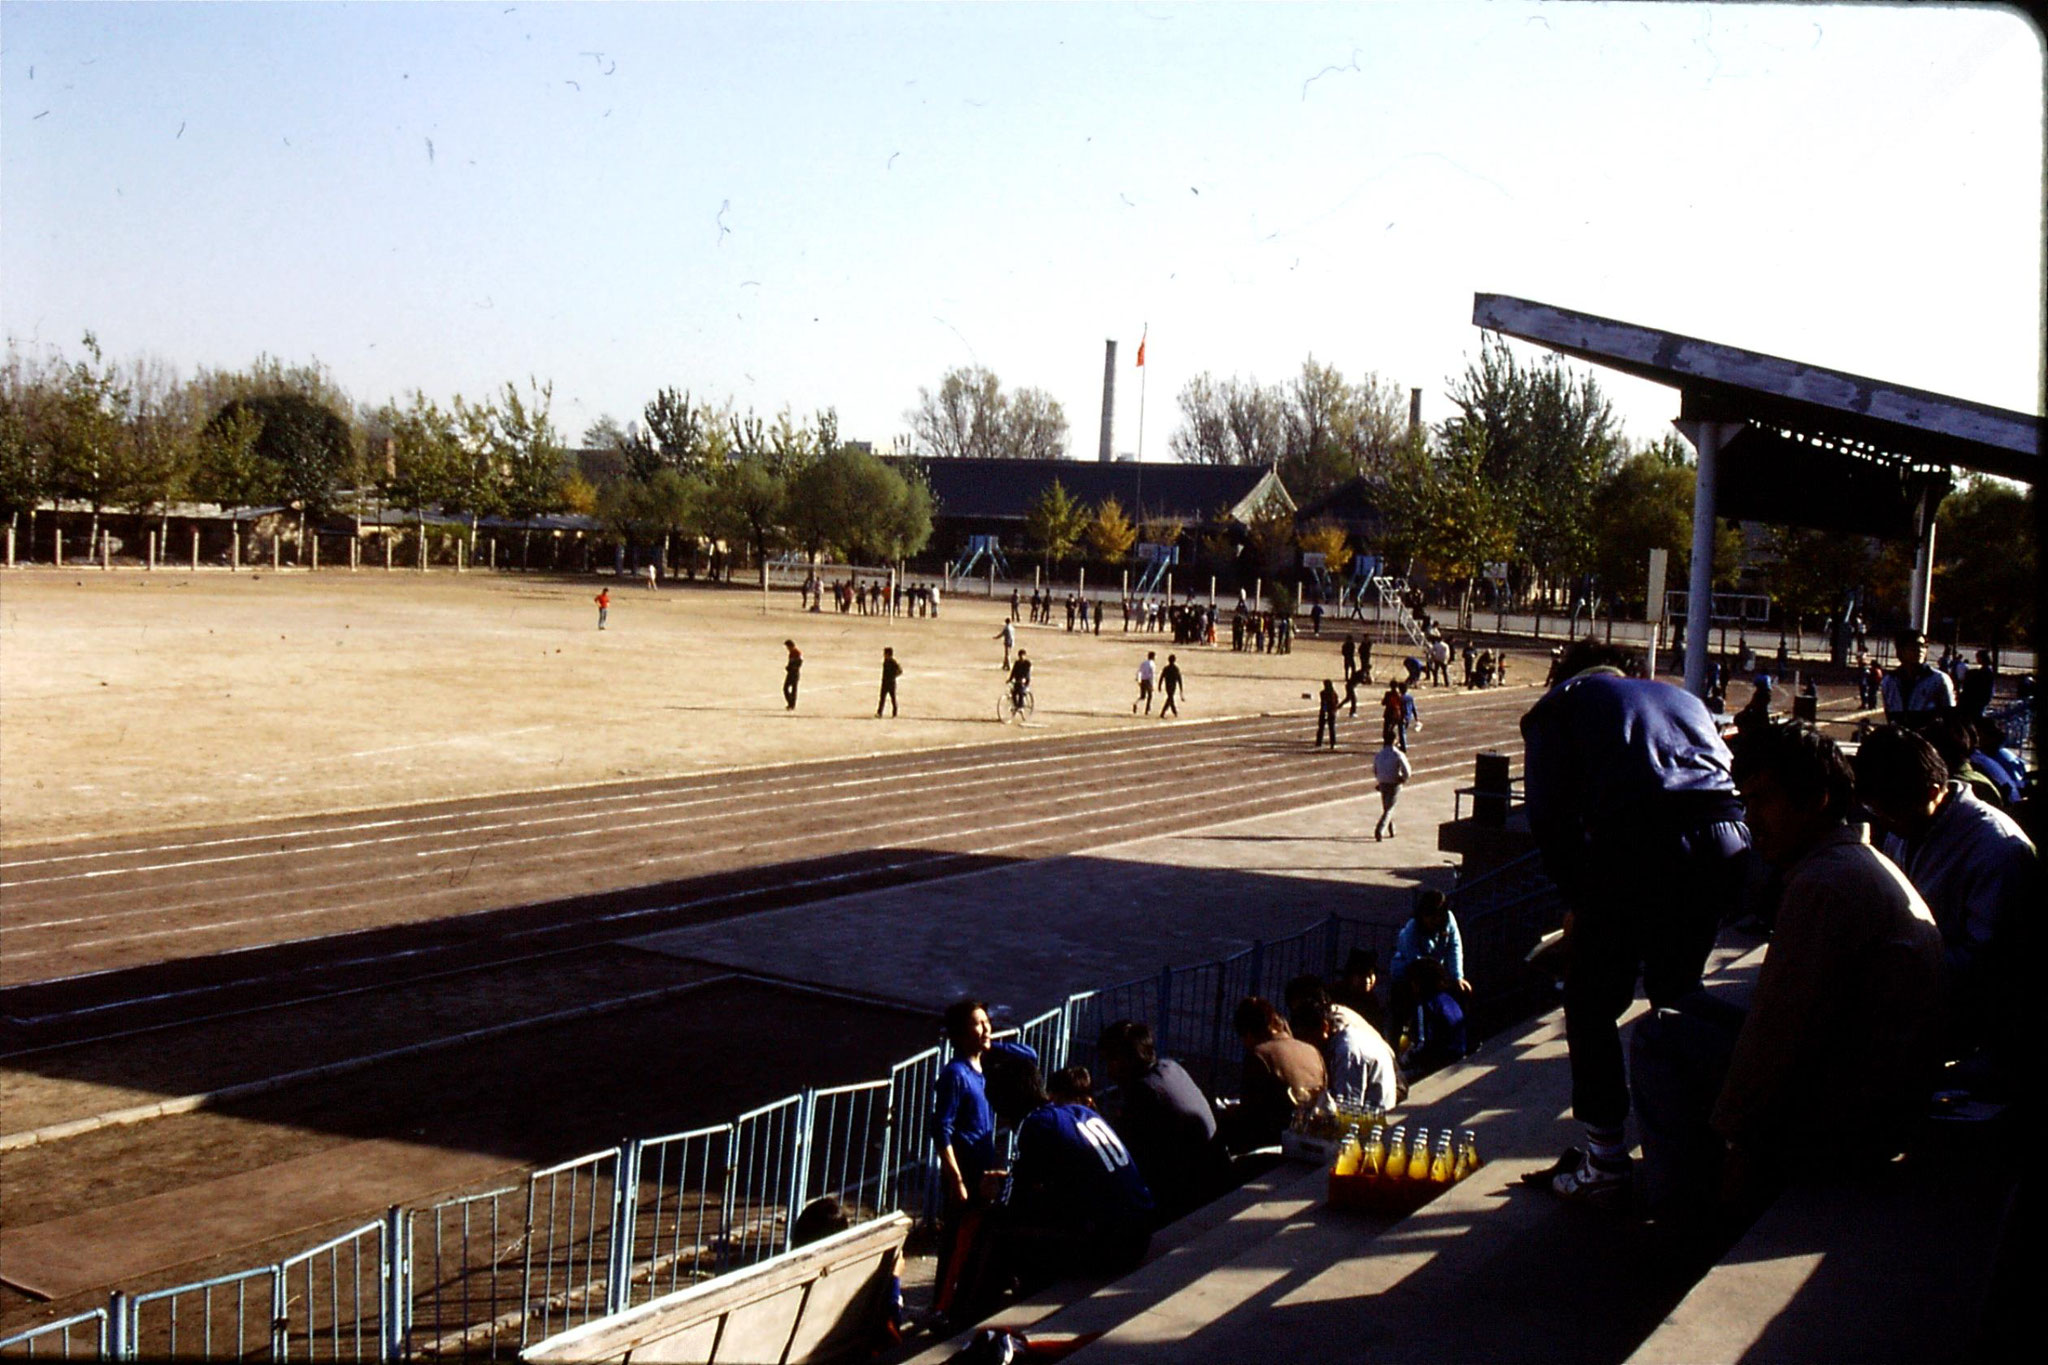 5/11/1988: 22: Beijing Inst. Technology sports track